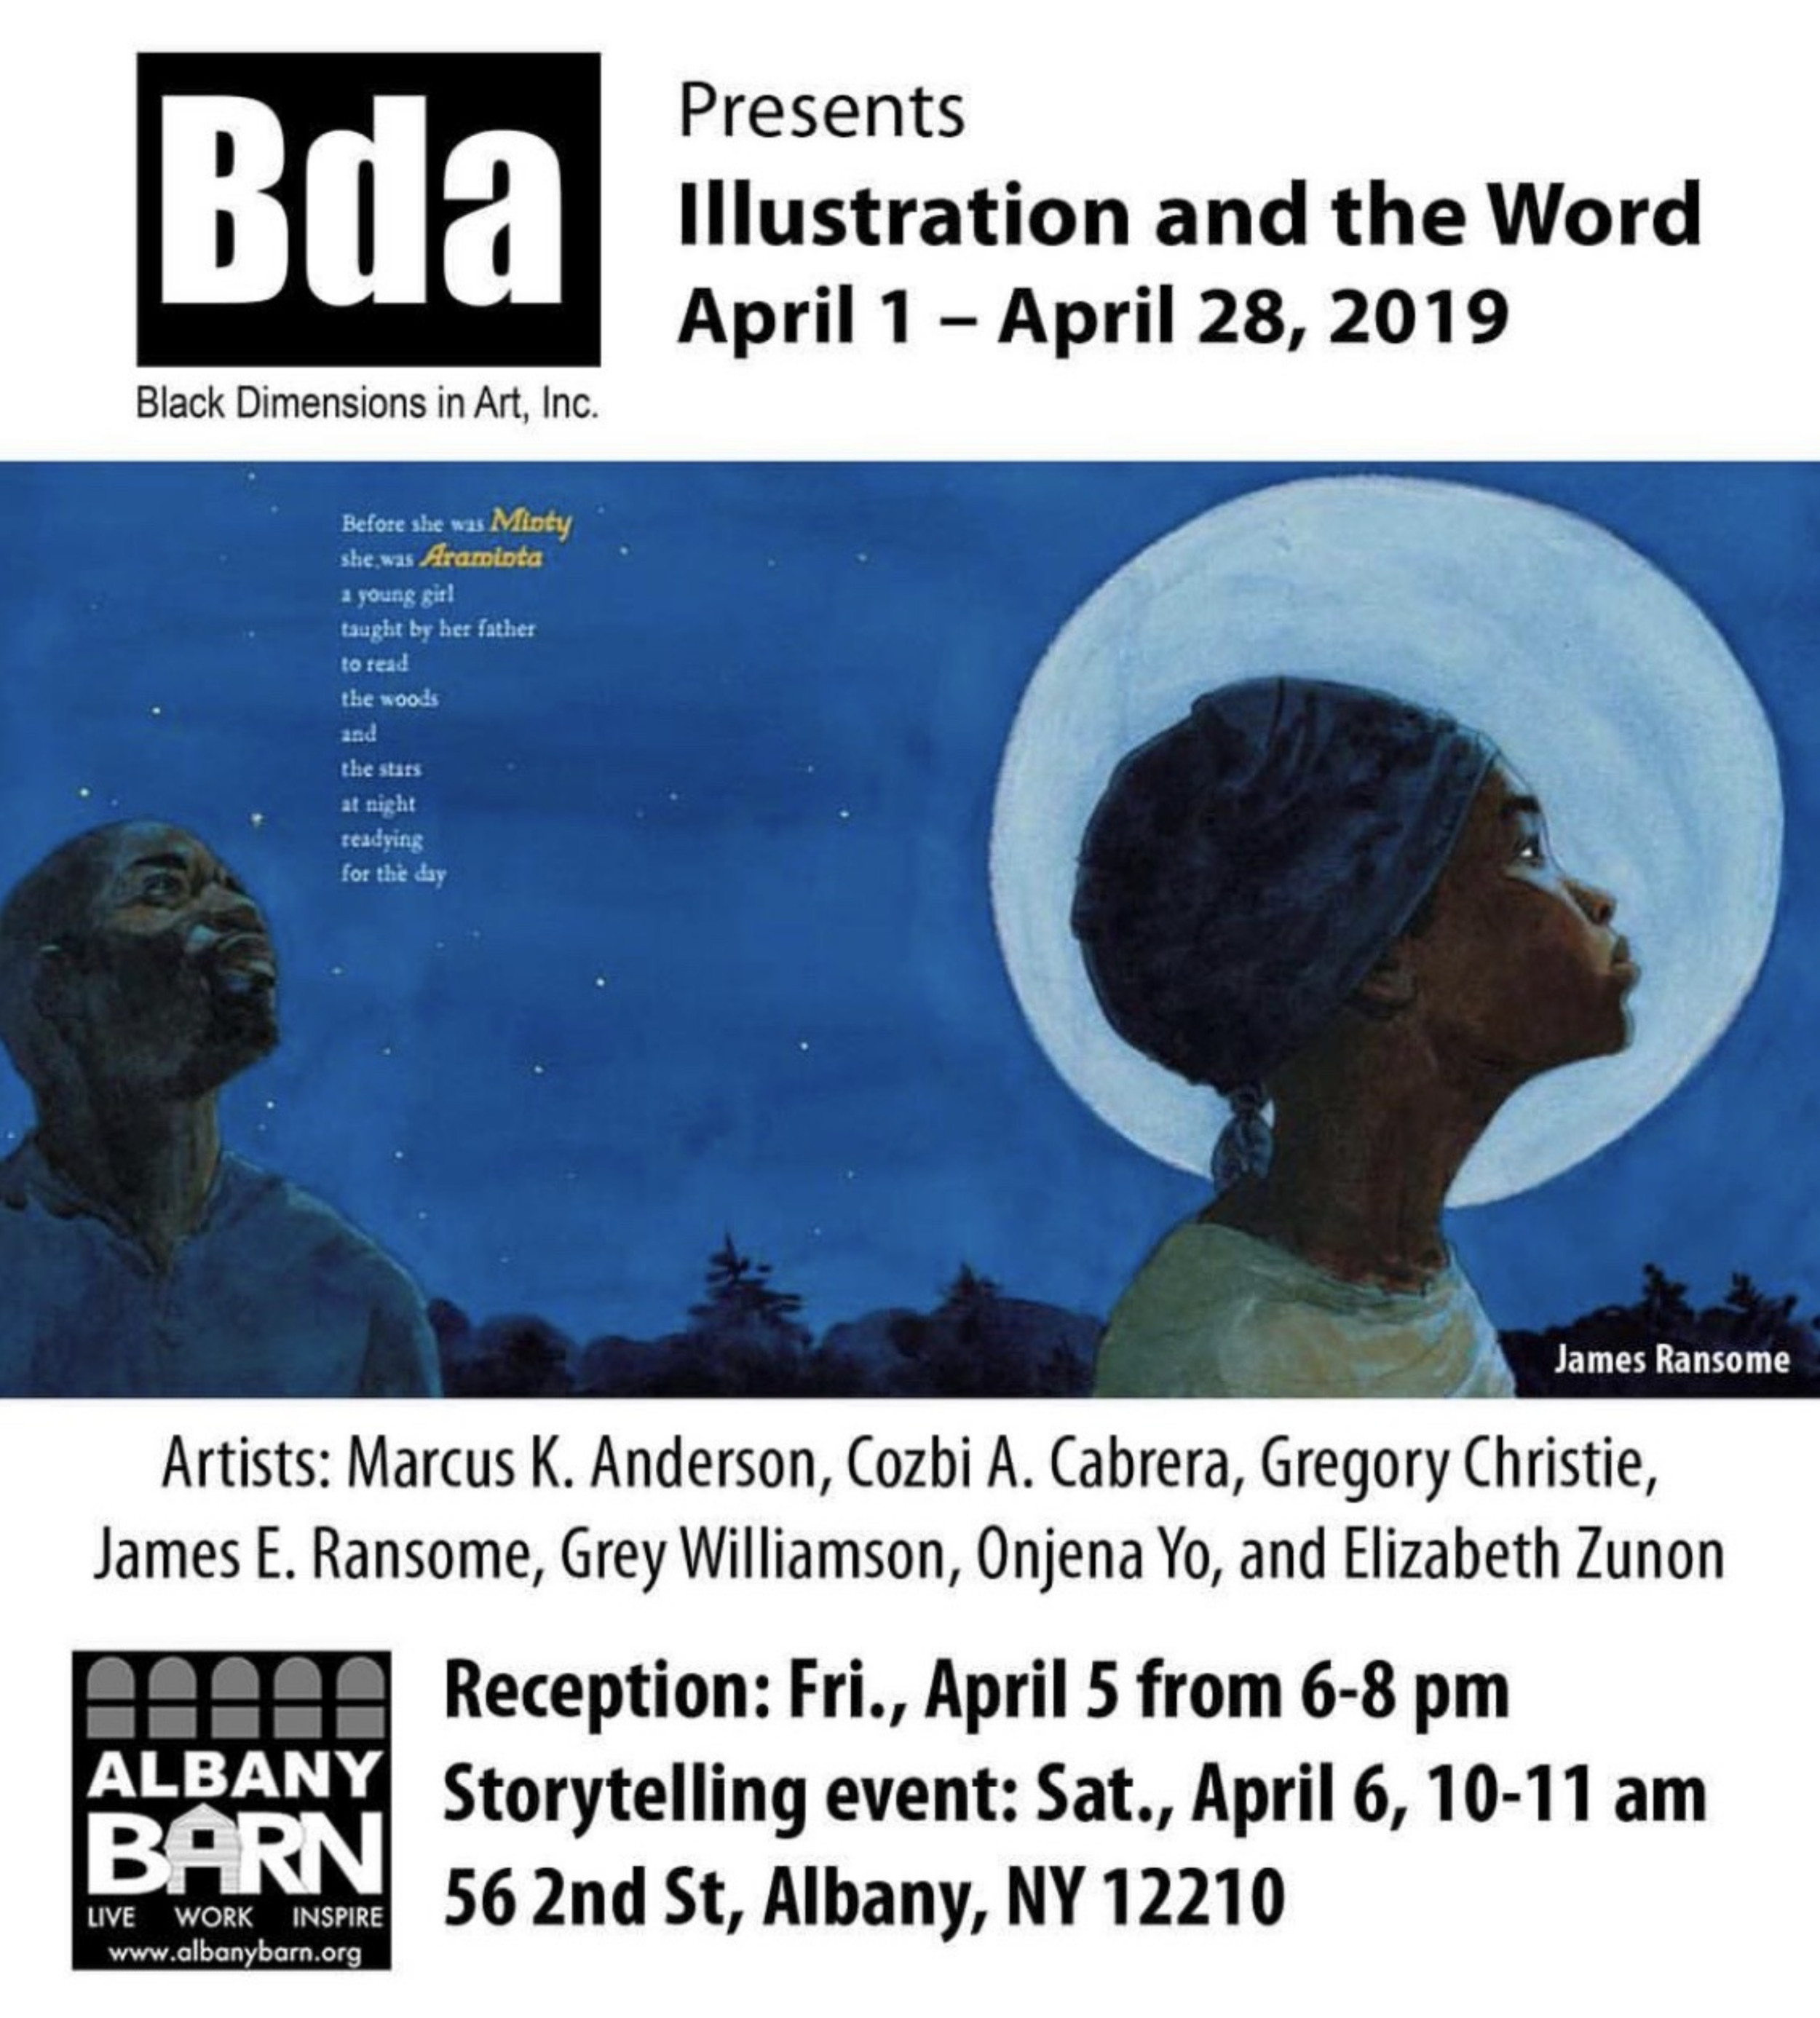 BDA_Exhibit_Illustration_and_the_Word_Albany_Barn_April_2019.png